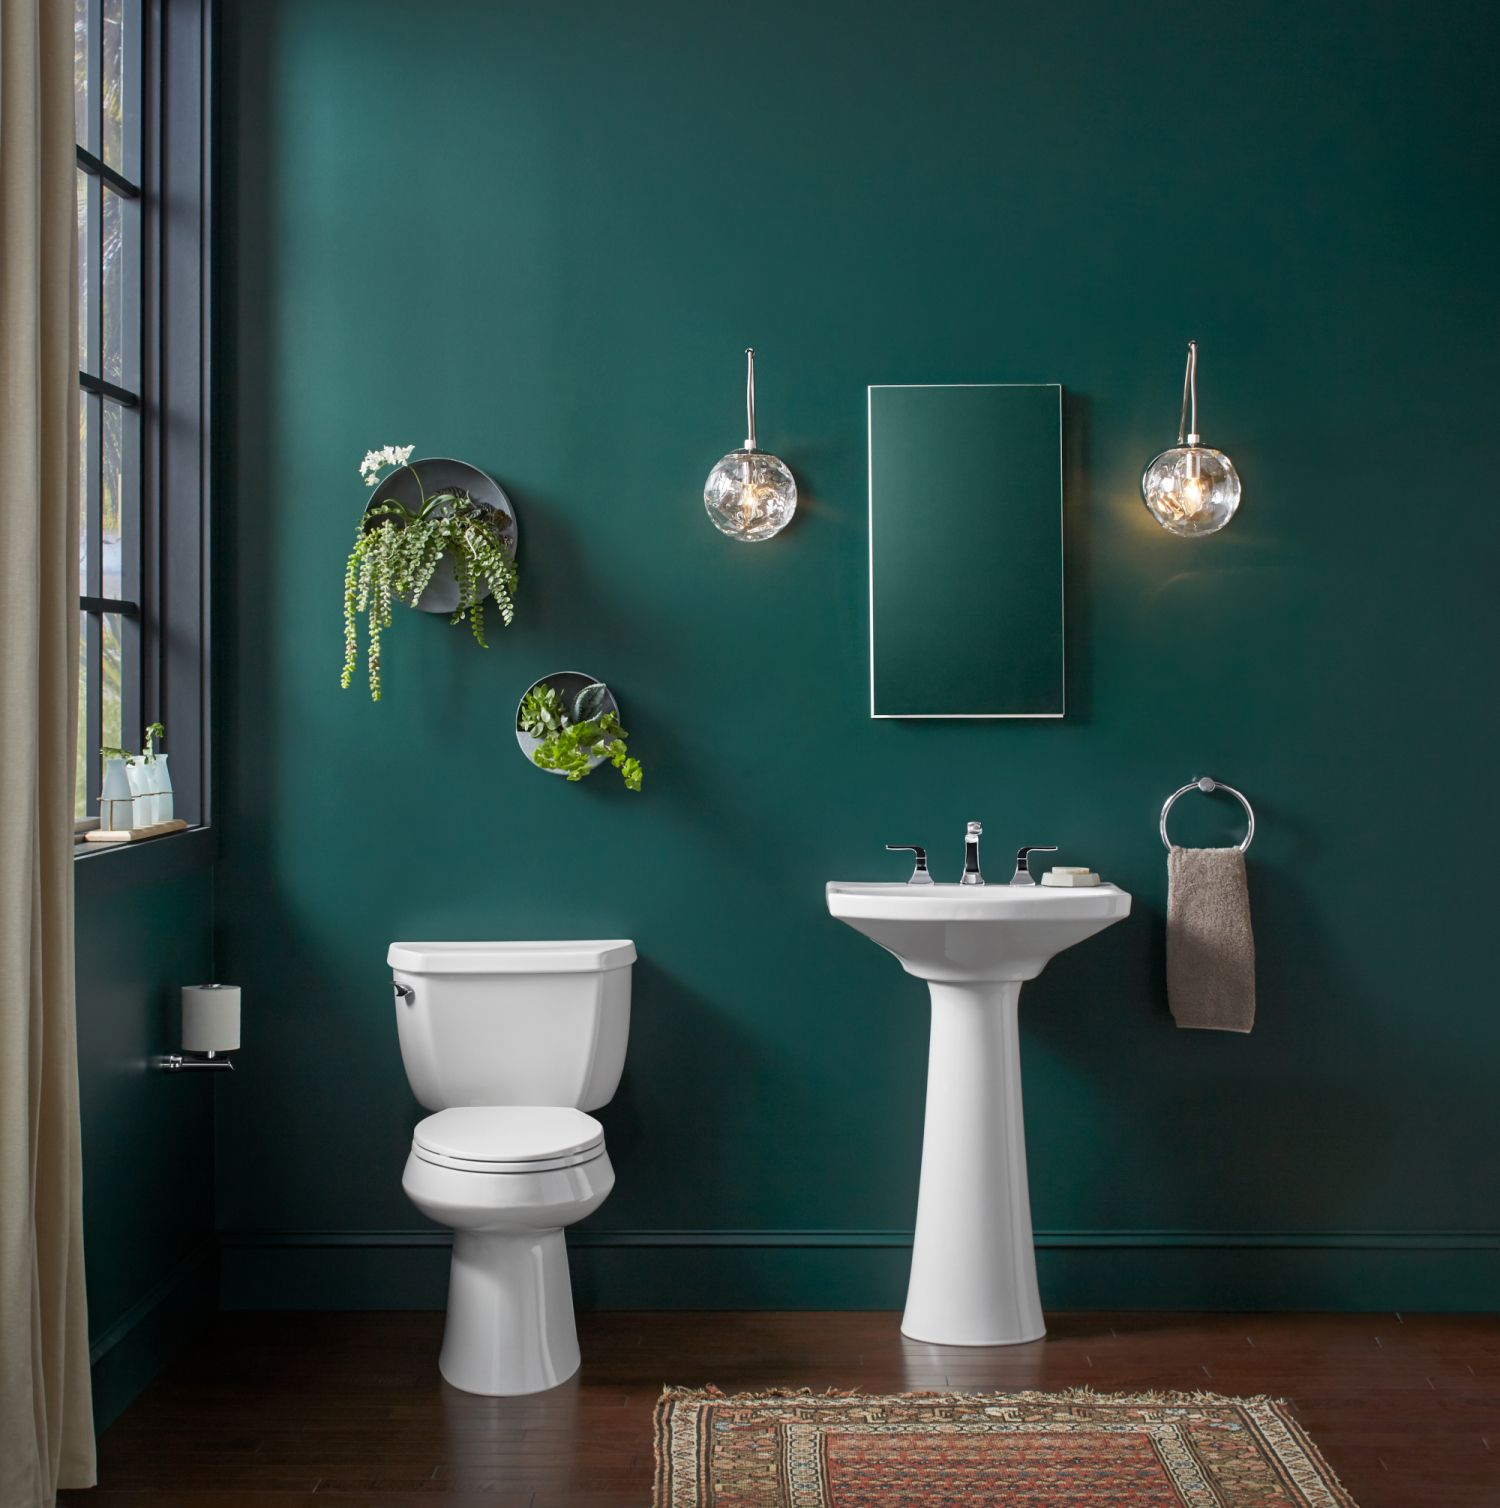 Trend Alert Opt For A Jewel Tone In Your Bathroom Instead Of The Classic All White Decor A Pop Of Un Green Bathroom Small Bathroom Makeover Bathroom Makeover